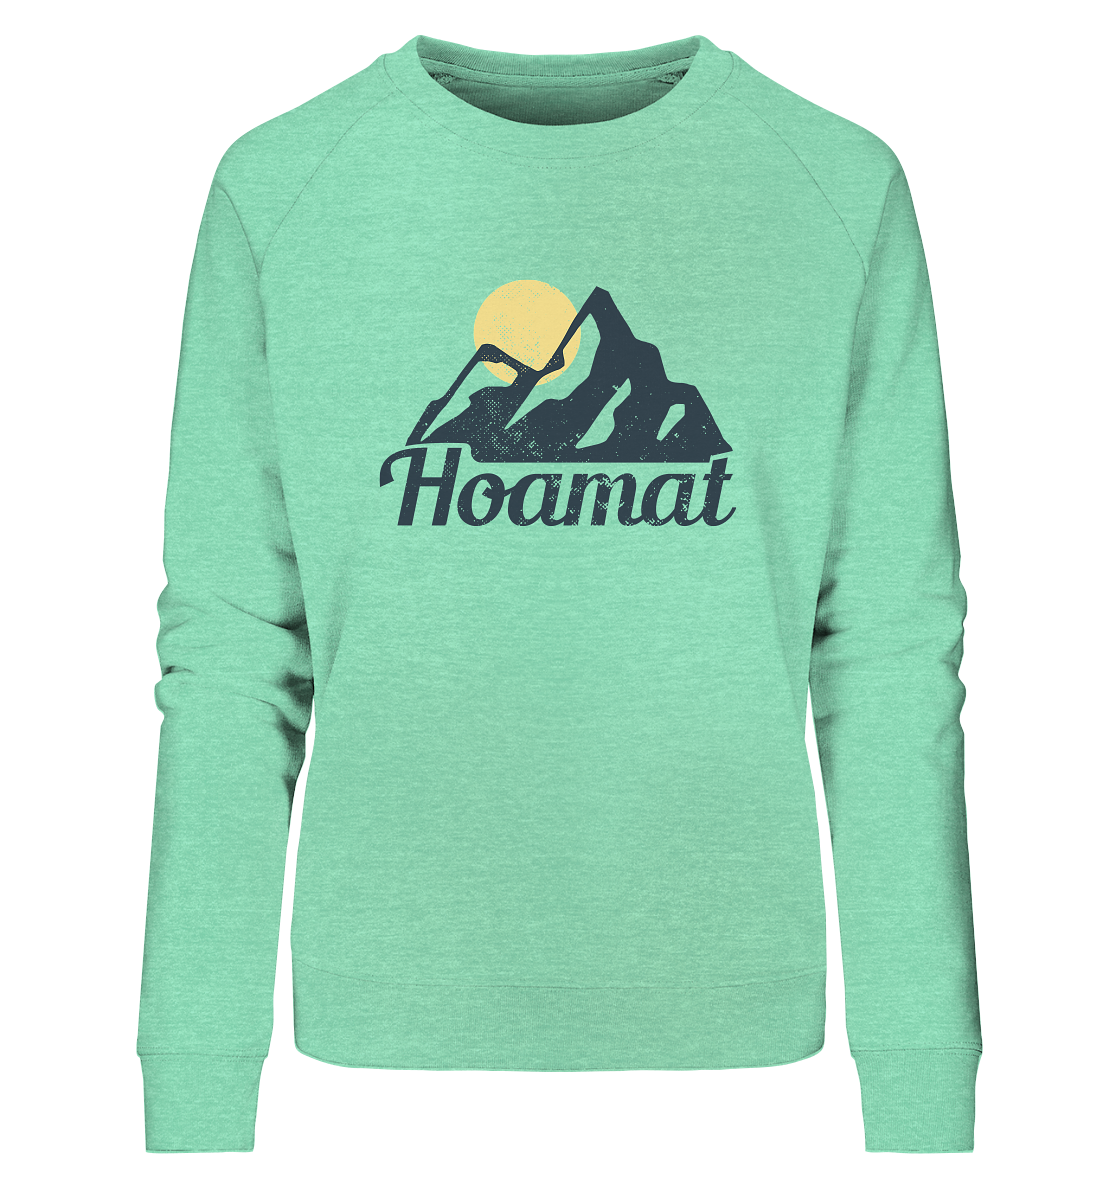 Hoamat - Ladies Organic Sweatshirt